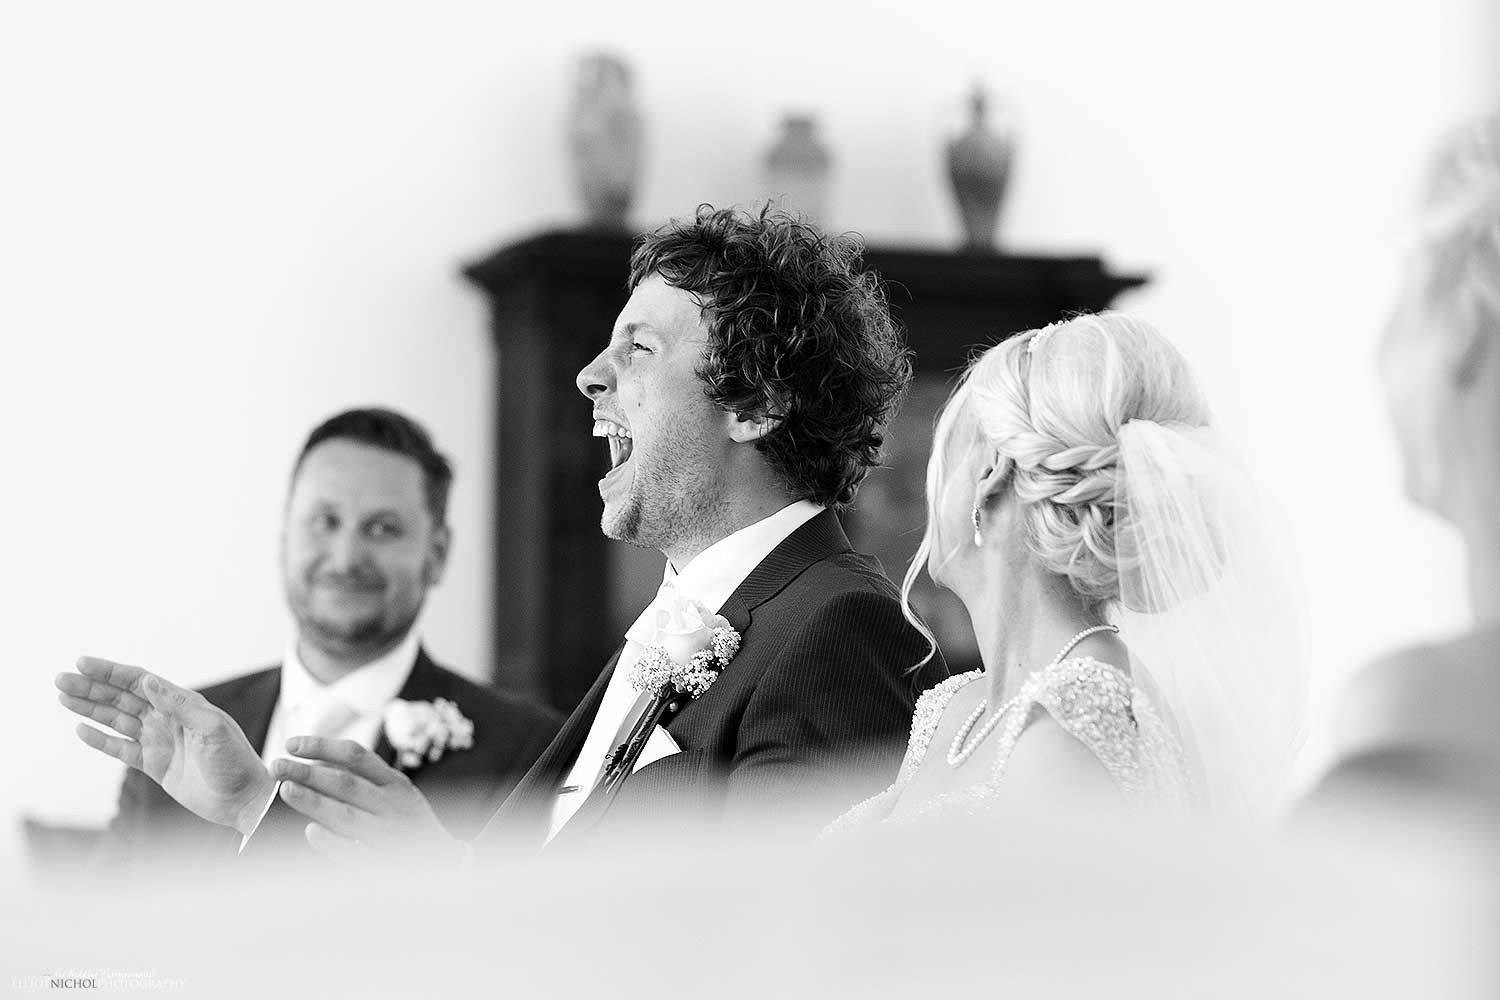 Groom in hysterics during his civil wedding ceremony. Fun Wedding photography by wedding photojournalist Elliot Nichol.